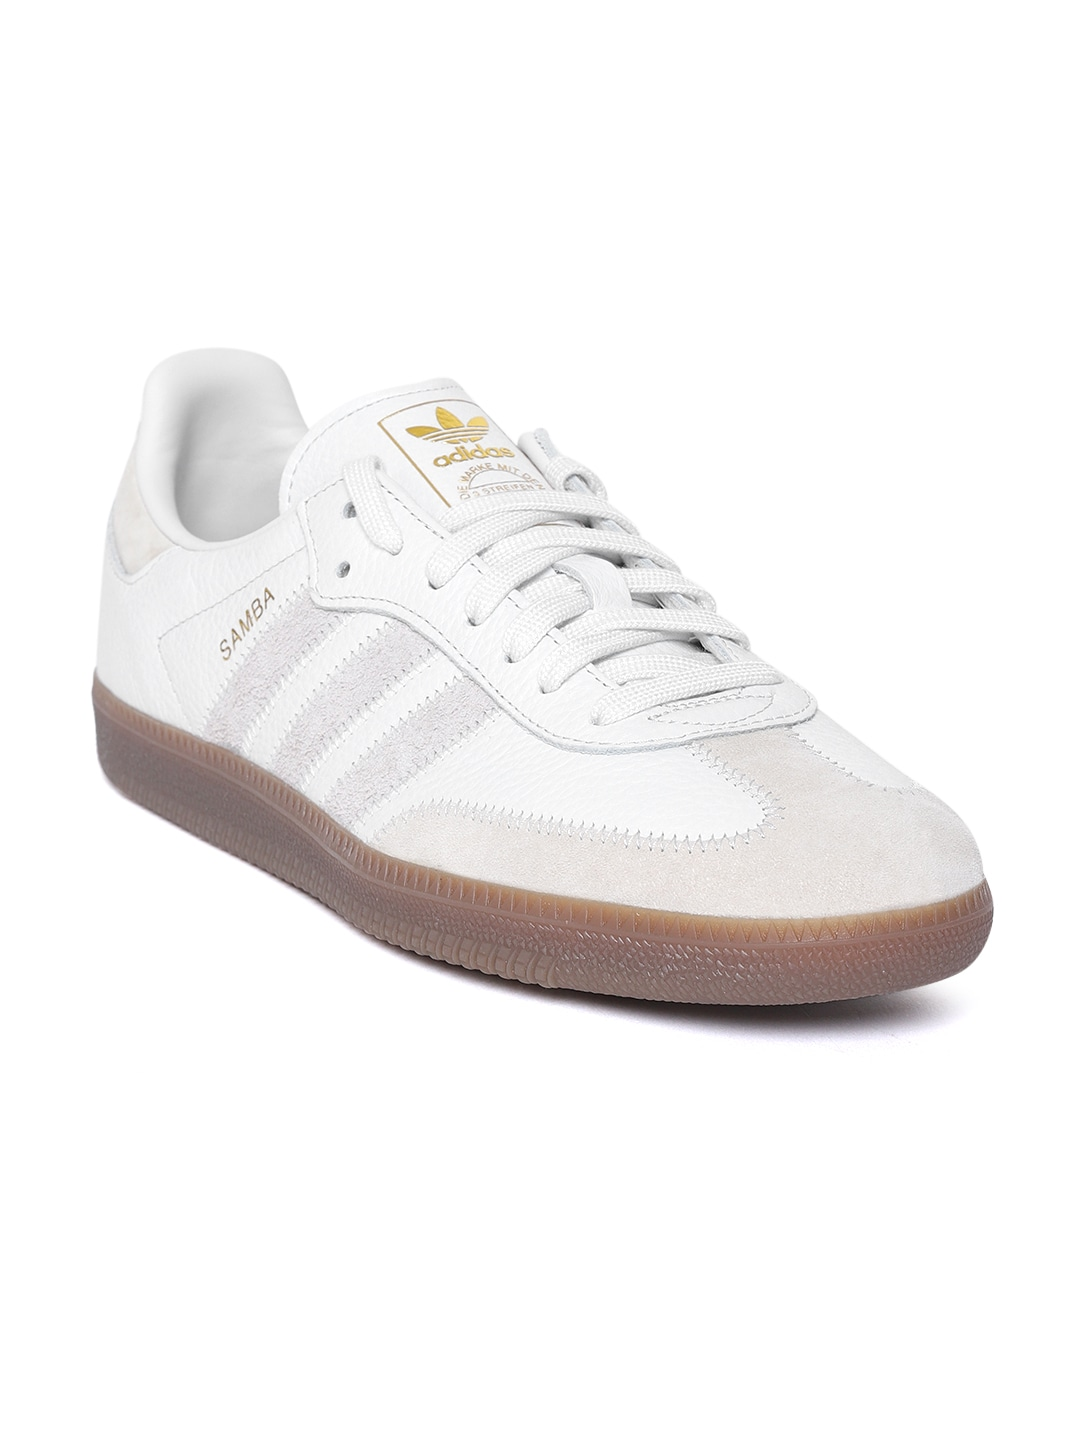 buy popular 9f804 f5619 Adidas Shoes - Buy Adidas Shoes for Men   Women Online - Myntra